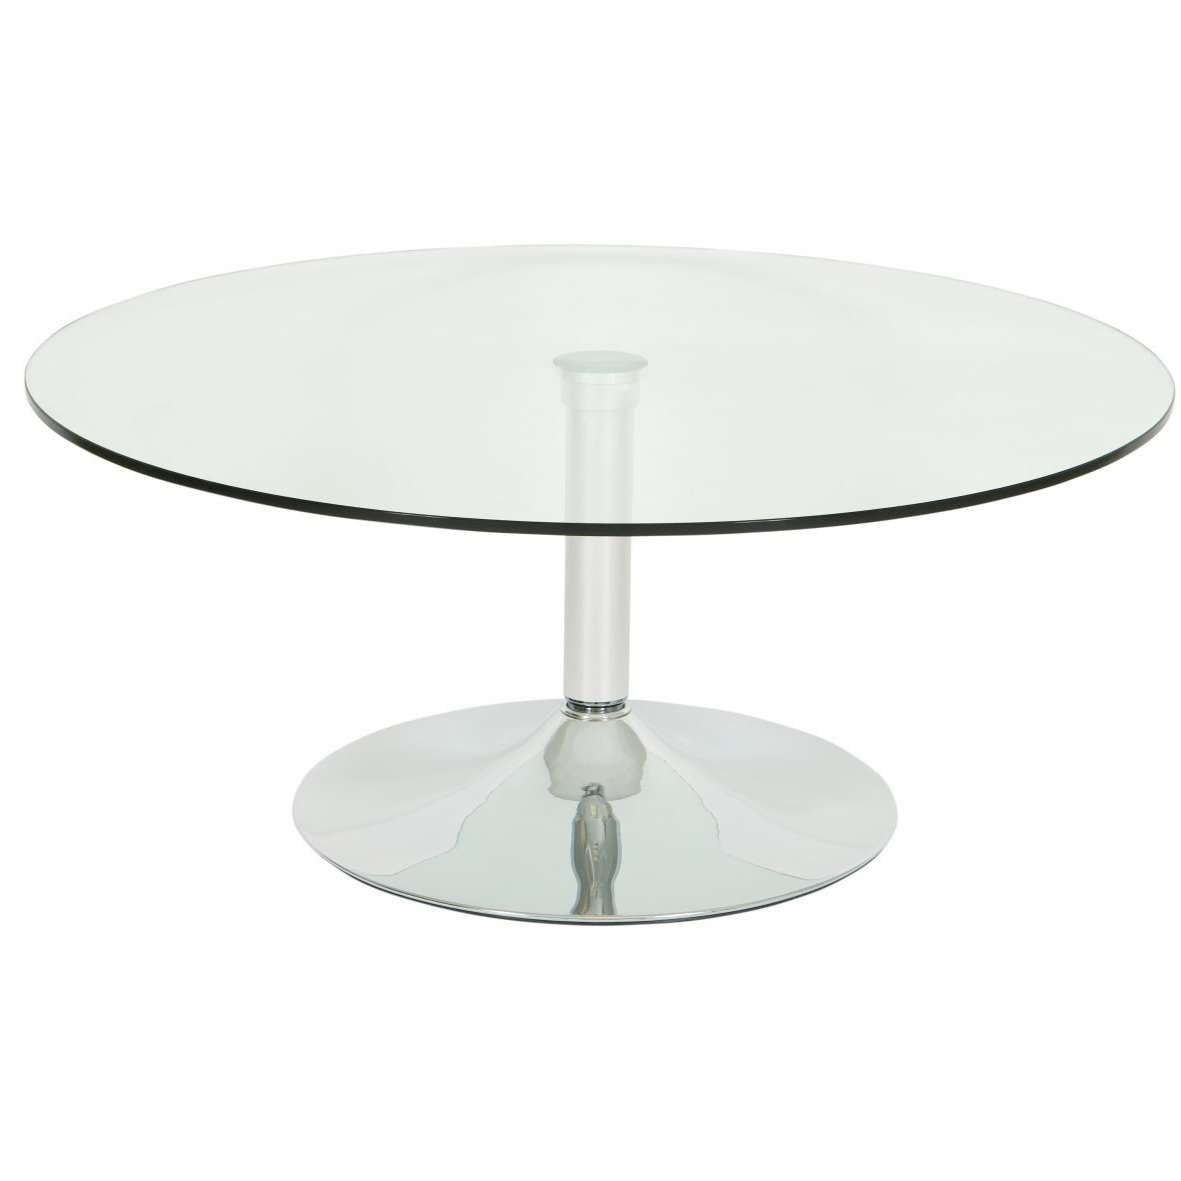 Most Popular Round Glass Coffee Tables Pertaining To Coffee Tables : Round Glass Coffee Tables For Sale Distressed (View 14 of 20)